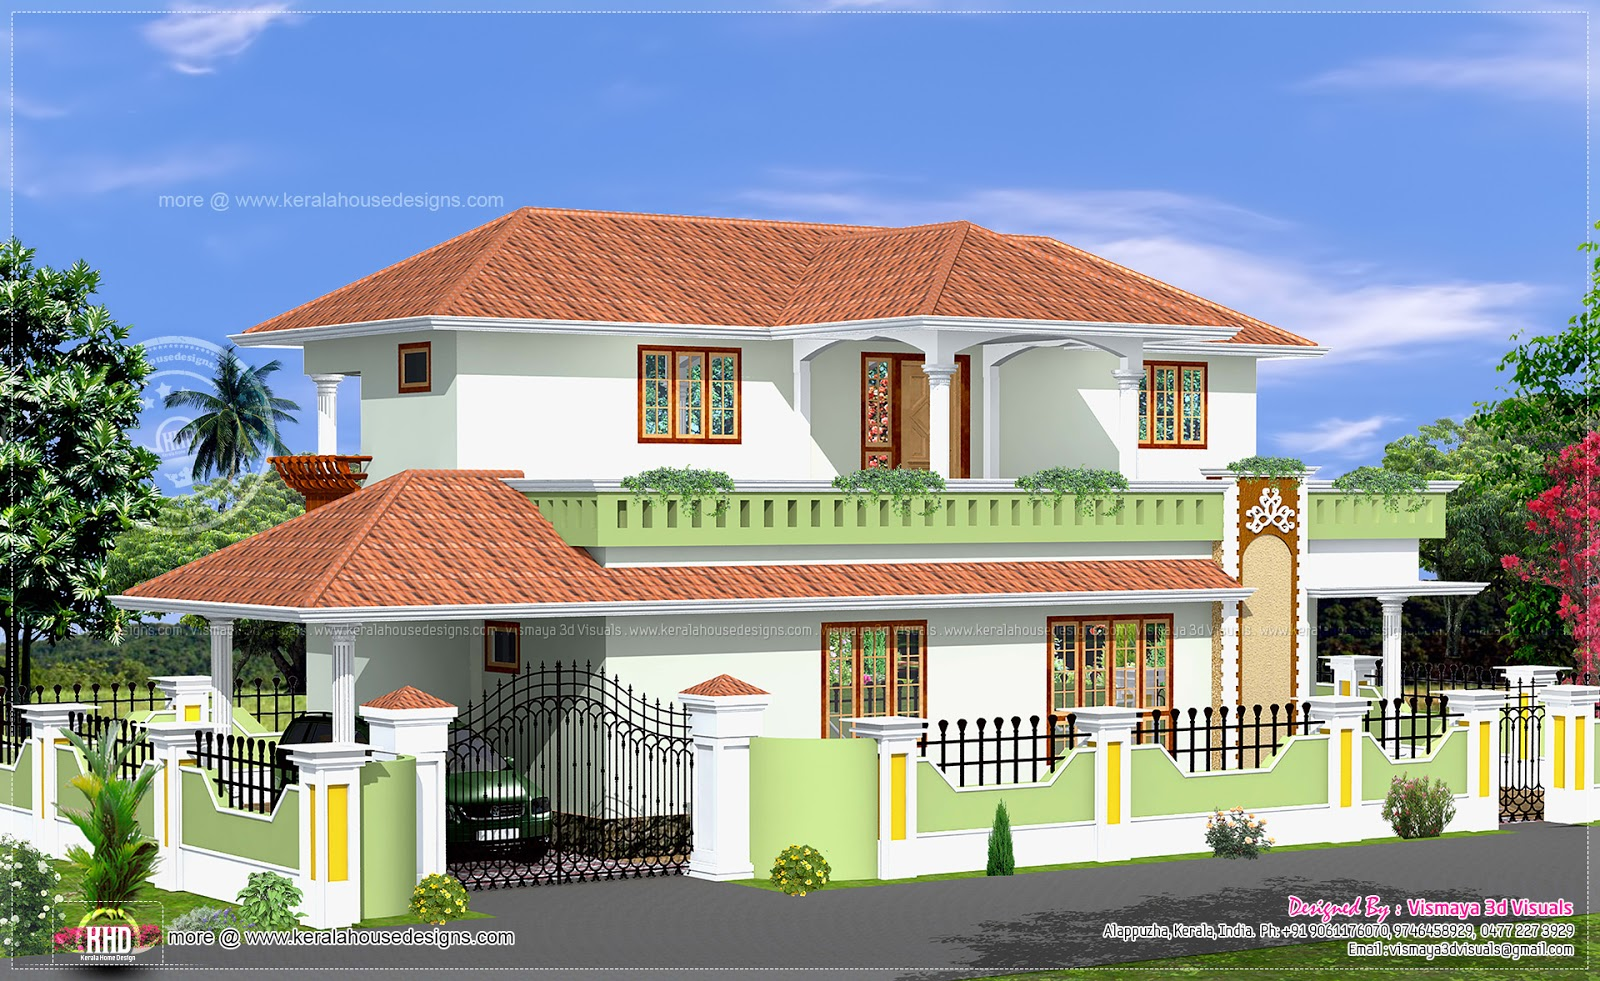 Simple house designs kerala style home design and style for Best simple home design